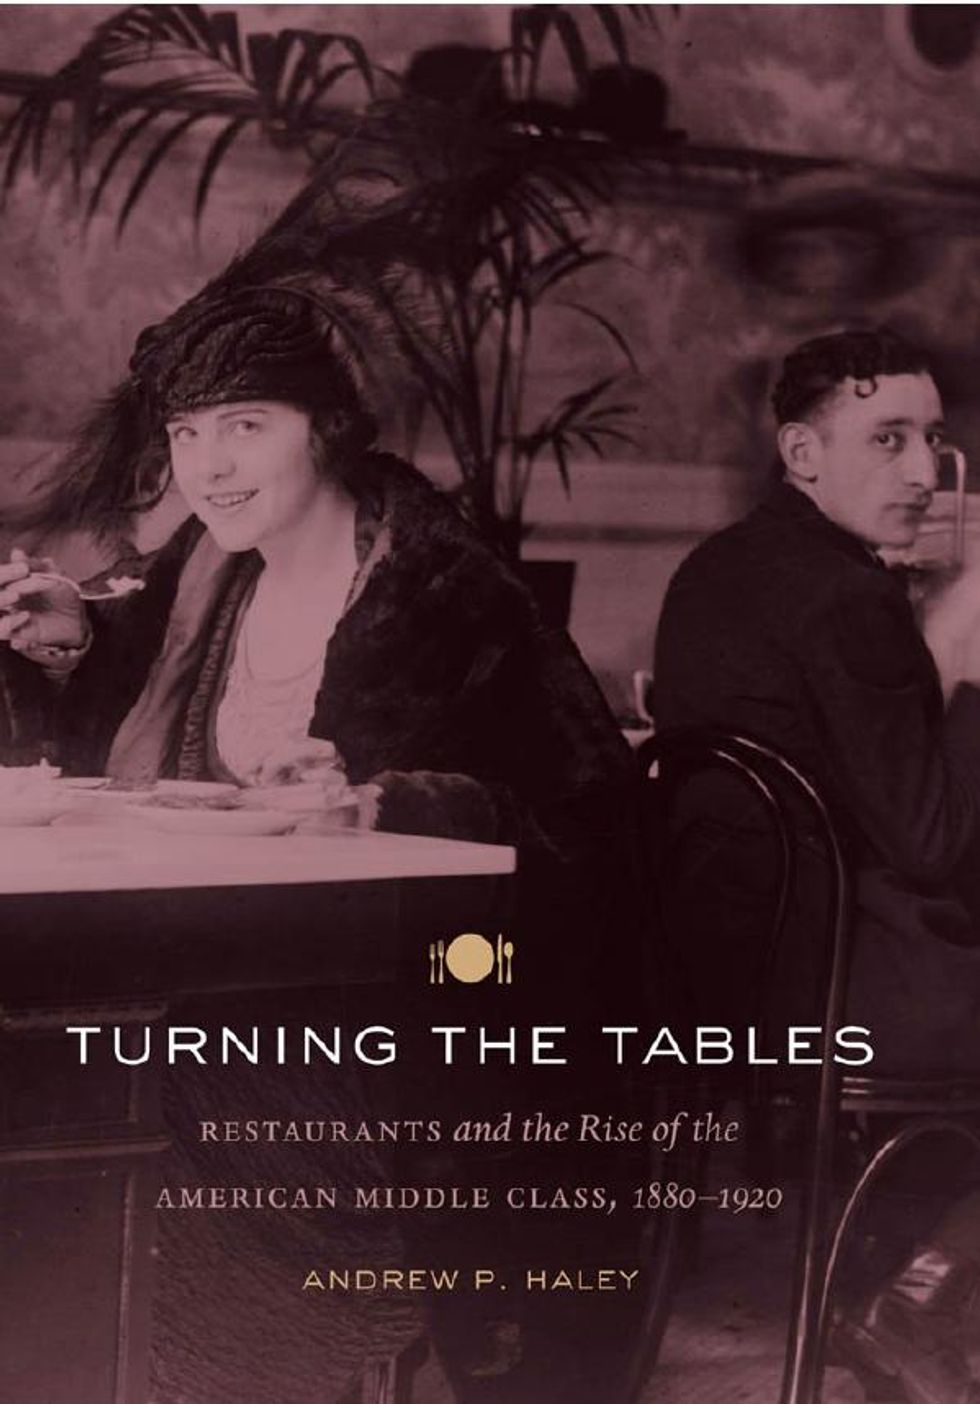 Turning the Tables Author Andrew Haley on How the Middle Class Changed Restaurant Culture